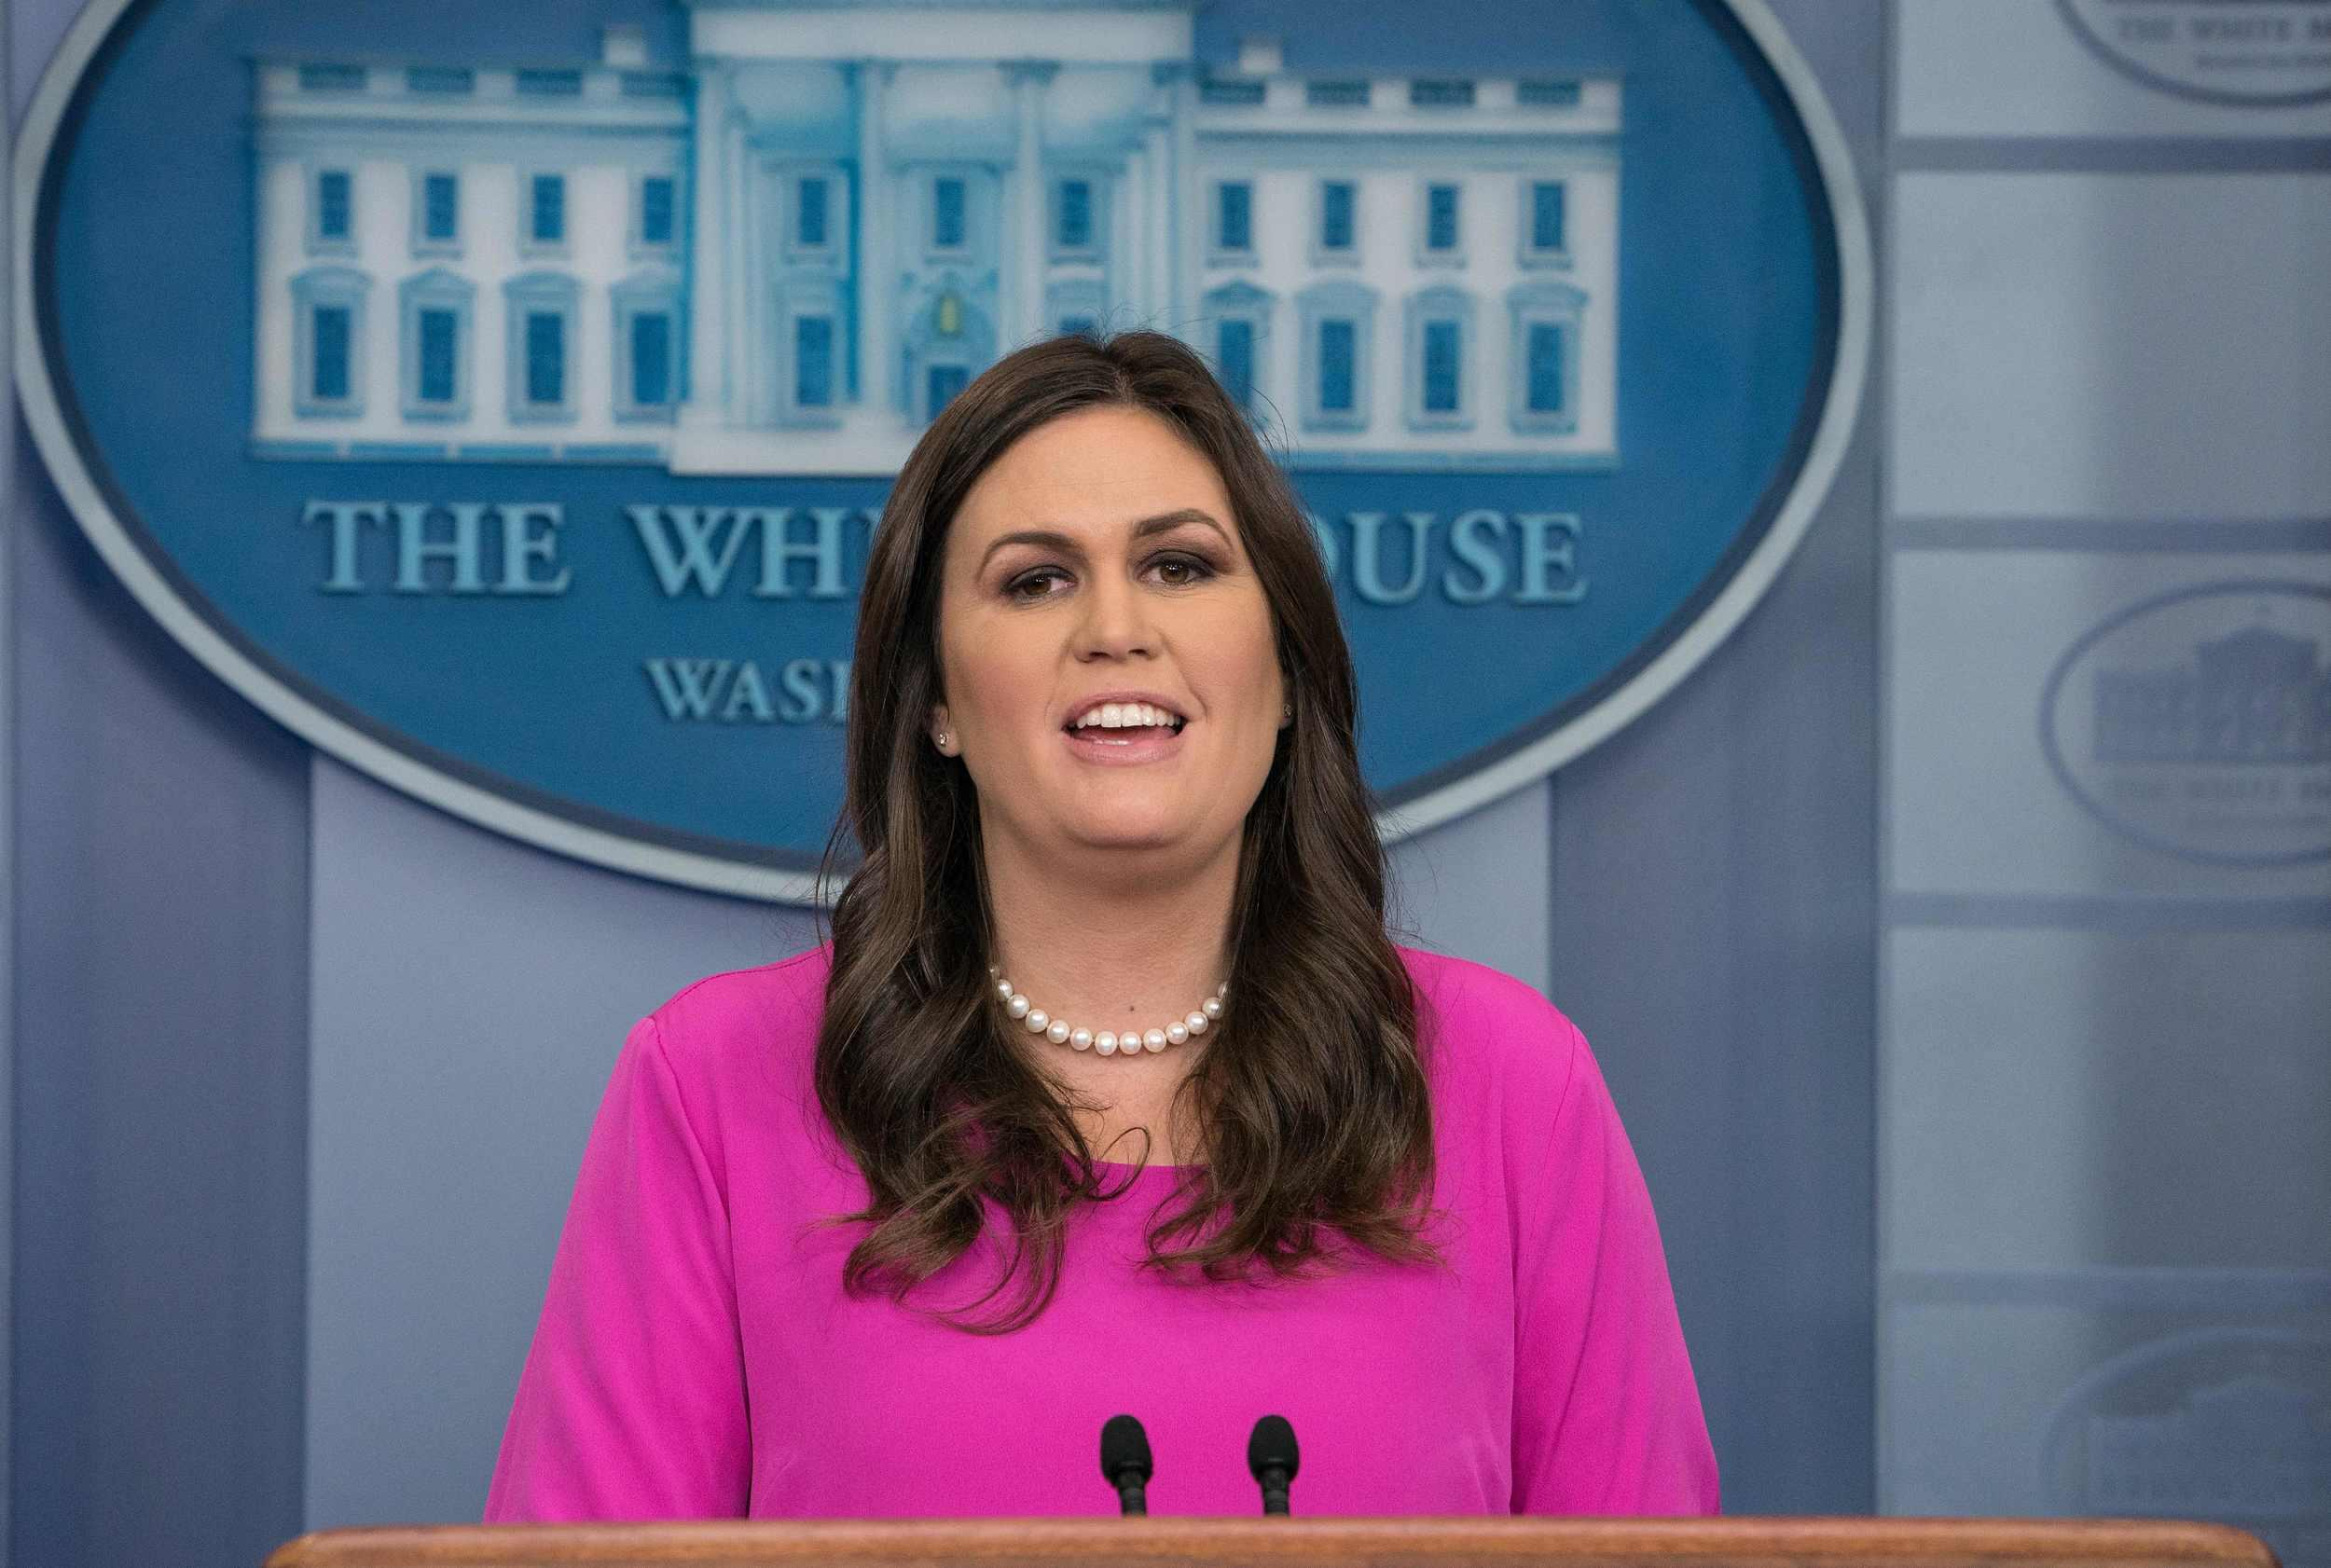 White House spokesperson Sarah Huckabee Sanders speaks during the press briefing at the White House in Washington, DC, on Octobr 30, 2017. US President Donald Trump has 'no plan or intention' to change special counsel probing possible collusion in Russia's effort to sway the 2016 presidential elections.The assurance came hours after special counsel Robert Mueller announced indictments against three Trump campaign aides, including former chairman Paul Manafort.'The president said last week and I said several times before, there is no intention or plan to make any changes in regards to the special counsel,' White House spokesman Sarah Huckabee Sanders said. / AFP PHOTO / NICHOLAS KAMM (Photo credit should read NICHOLAS KAMM/AFP/Getty Images)